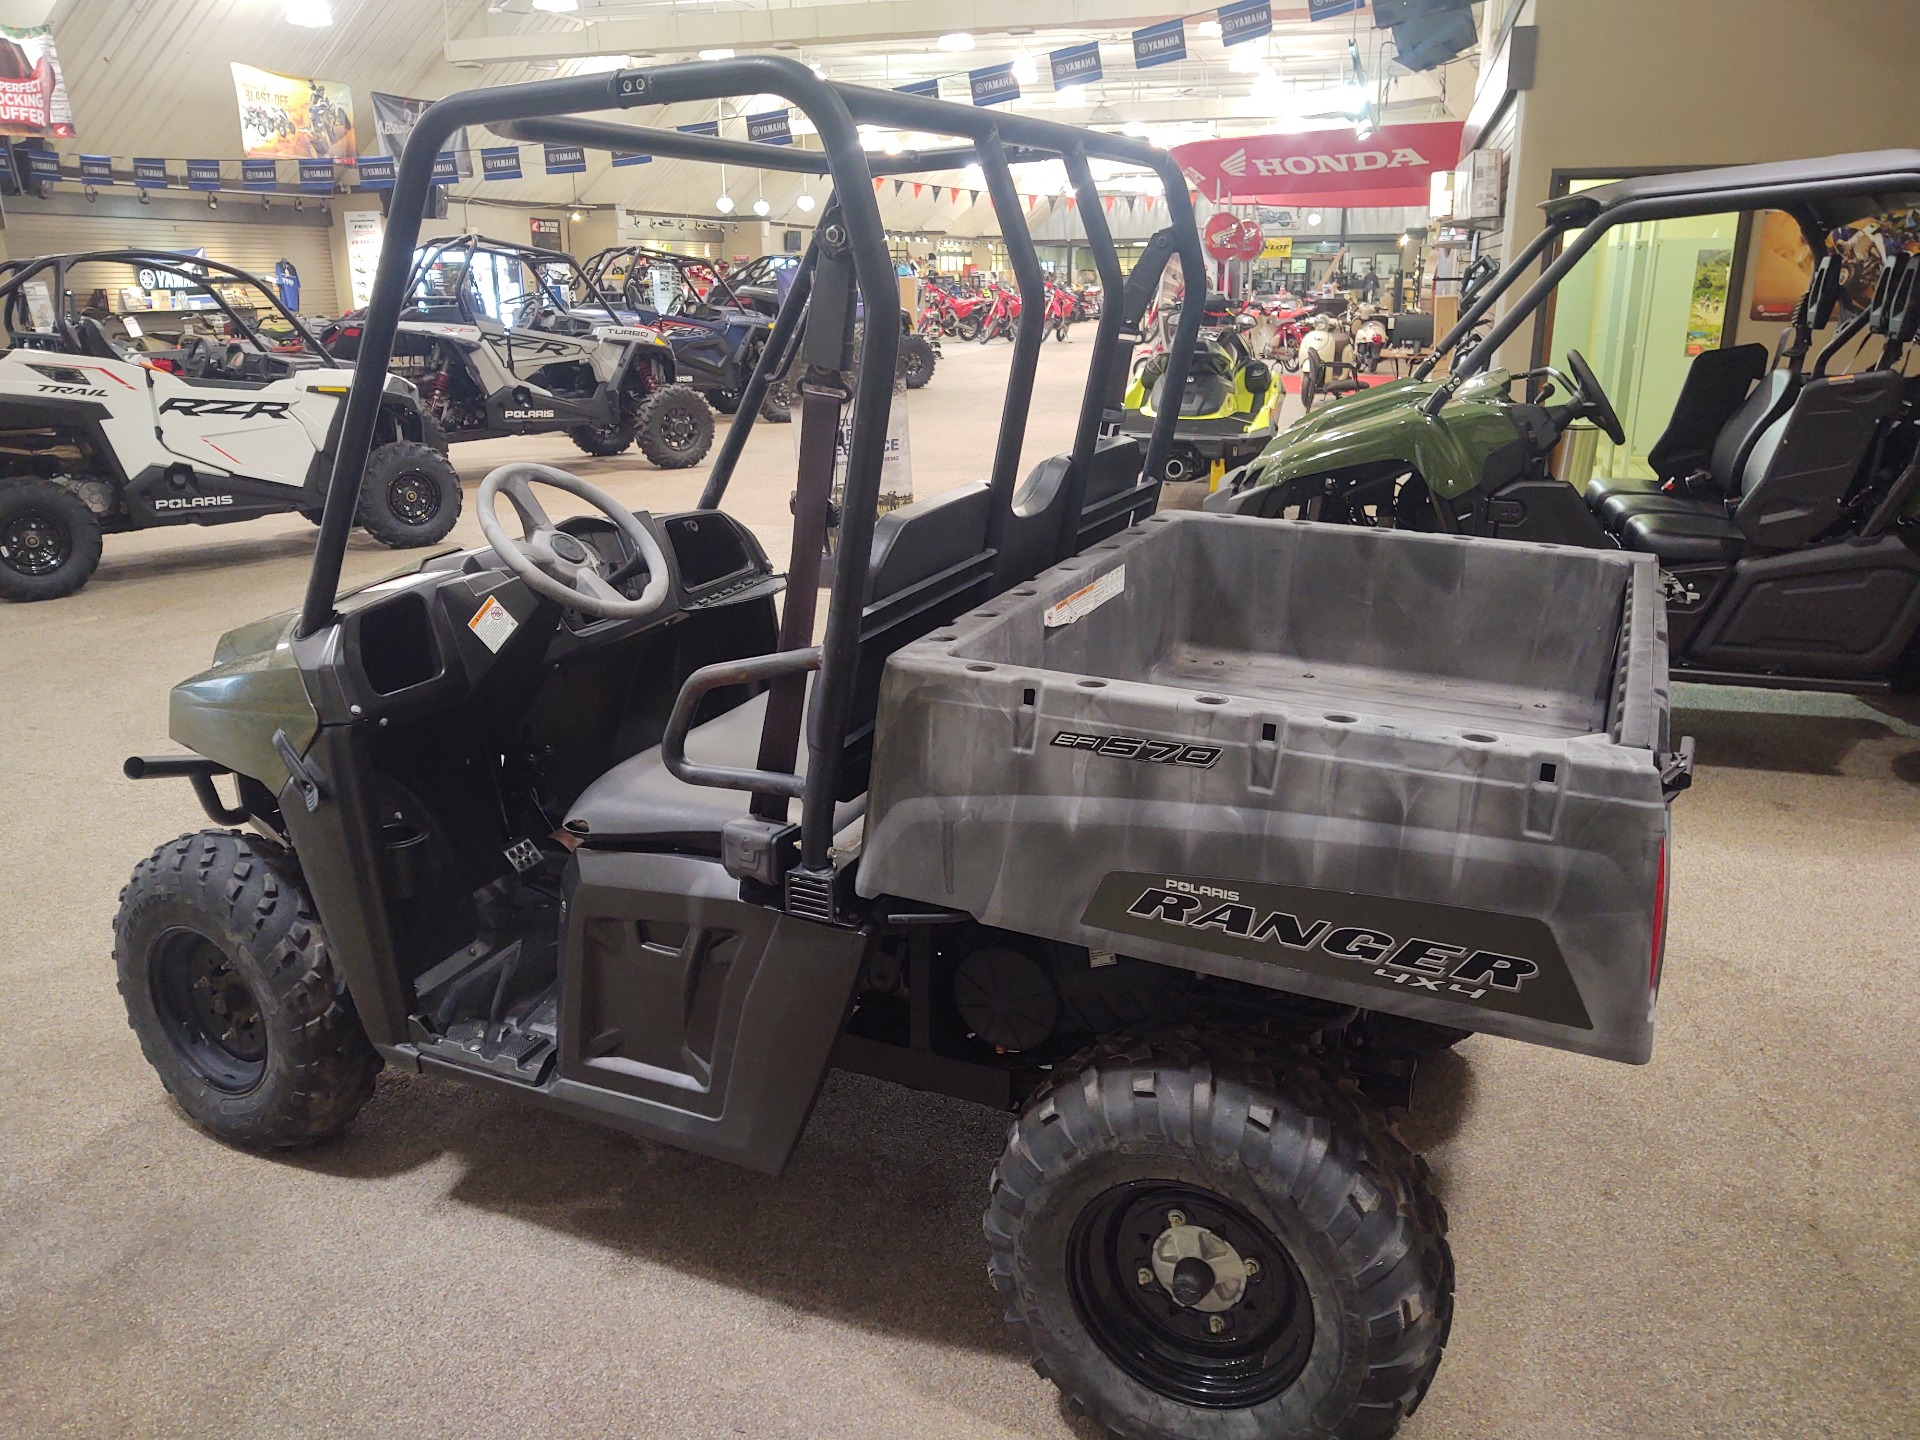 2014 Polaris Ranger® 570 EFI in North Platte, Nebraska - Photo 2